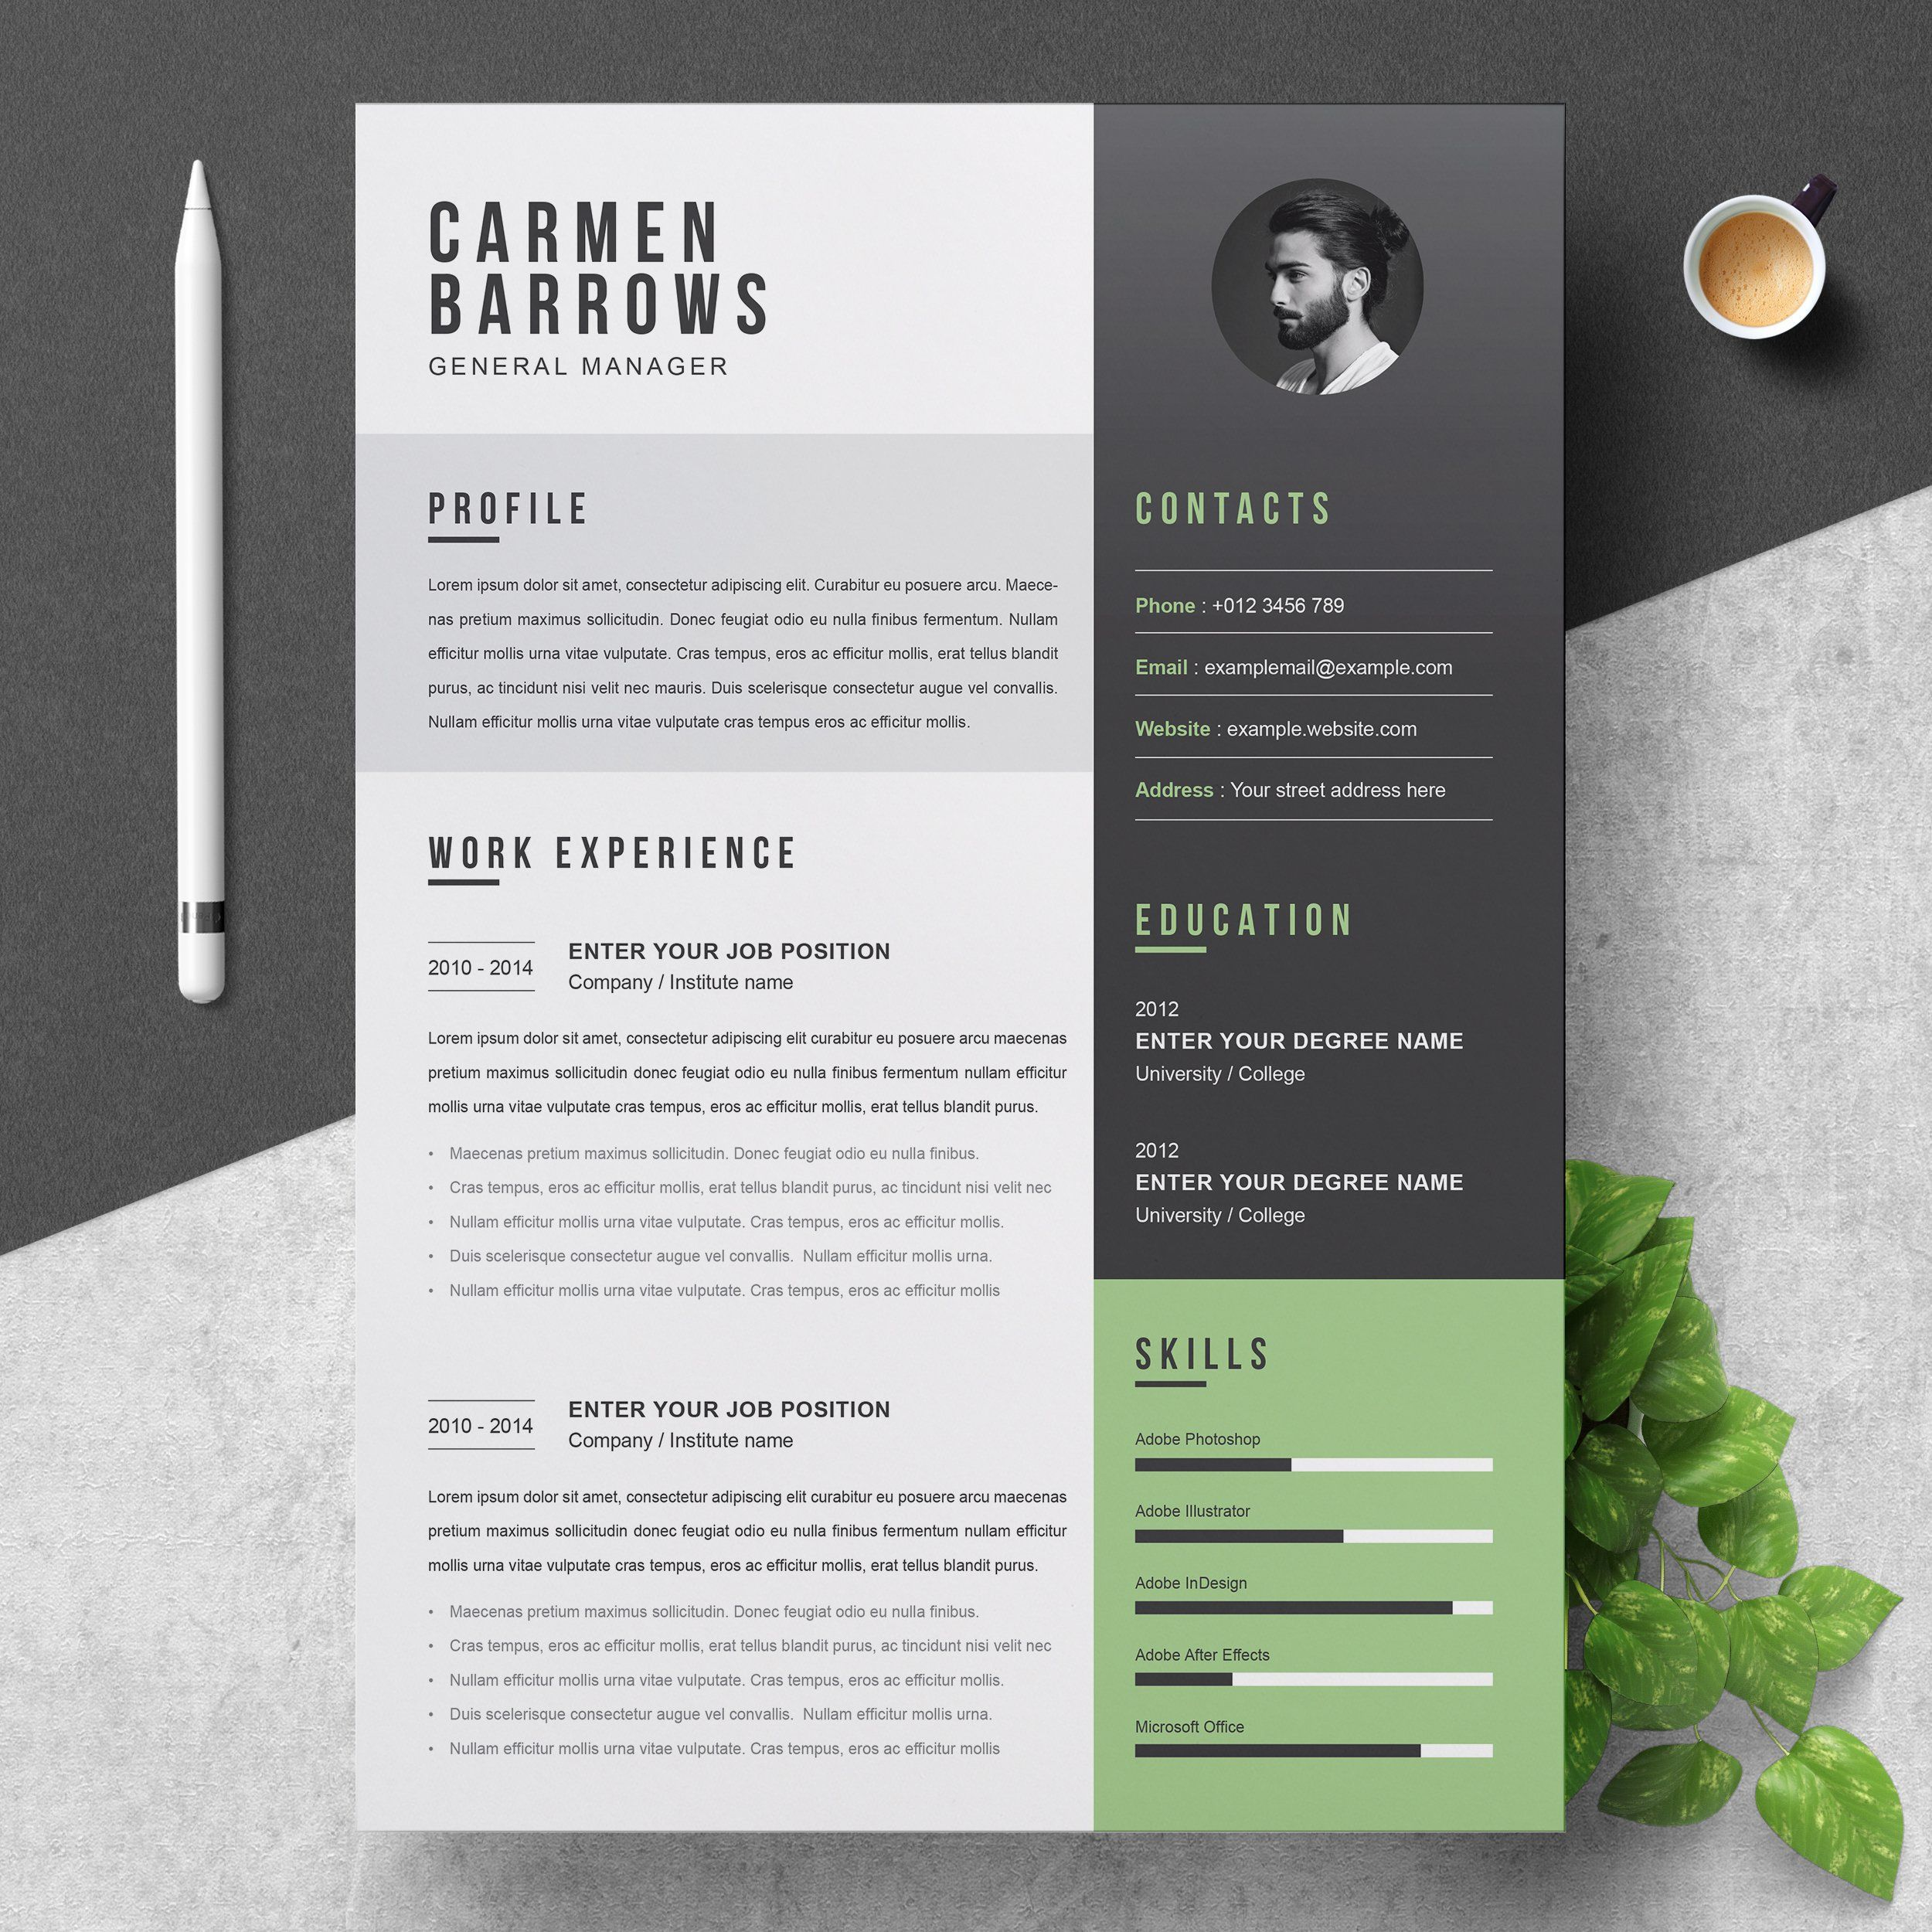 003 Stupendou Creative Cv Template Photoshop Free Picture Full